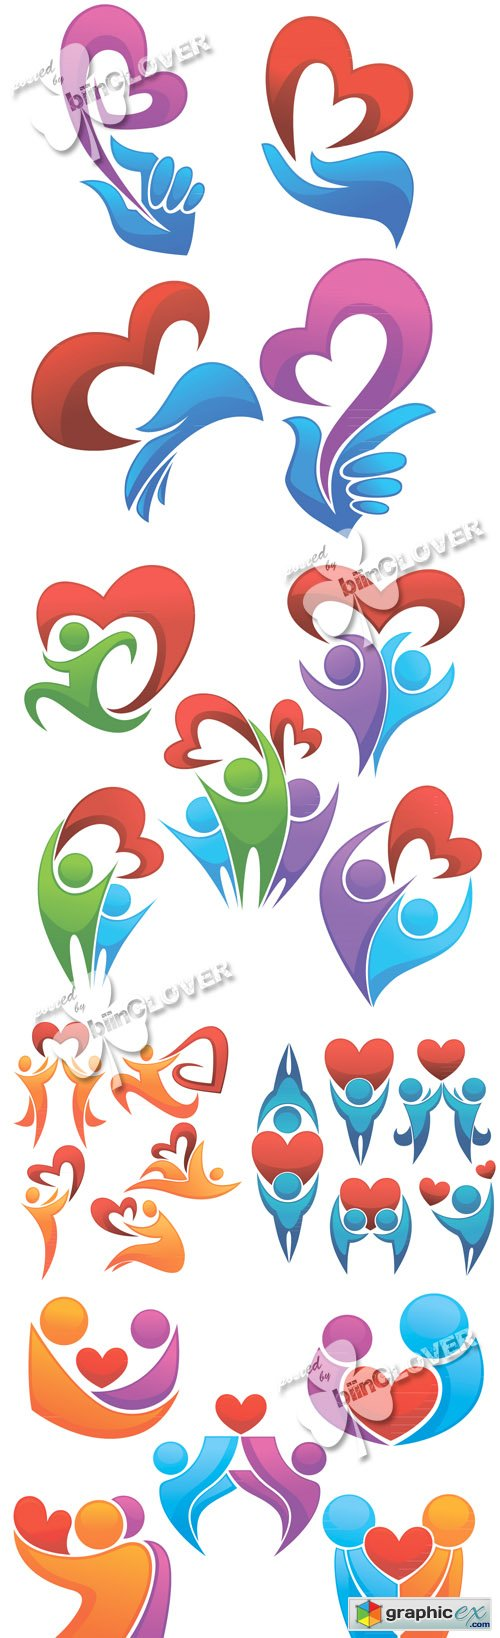 People with heart icons 0422